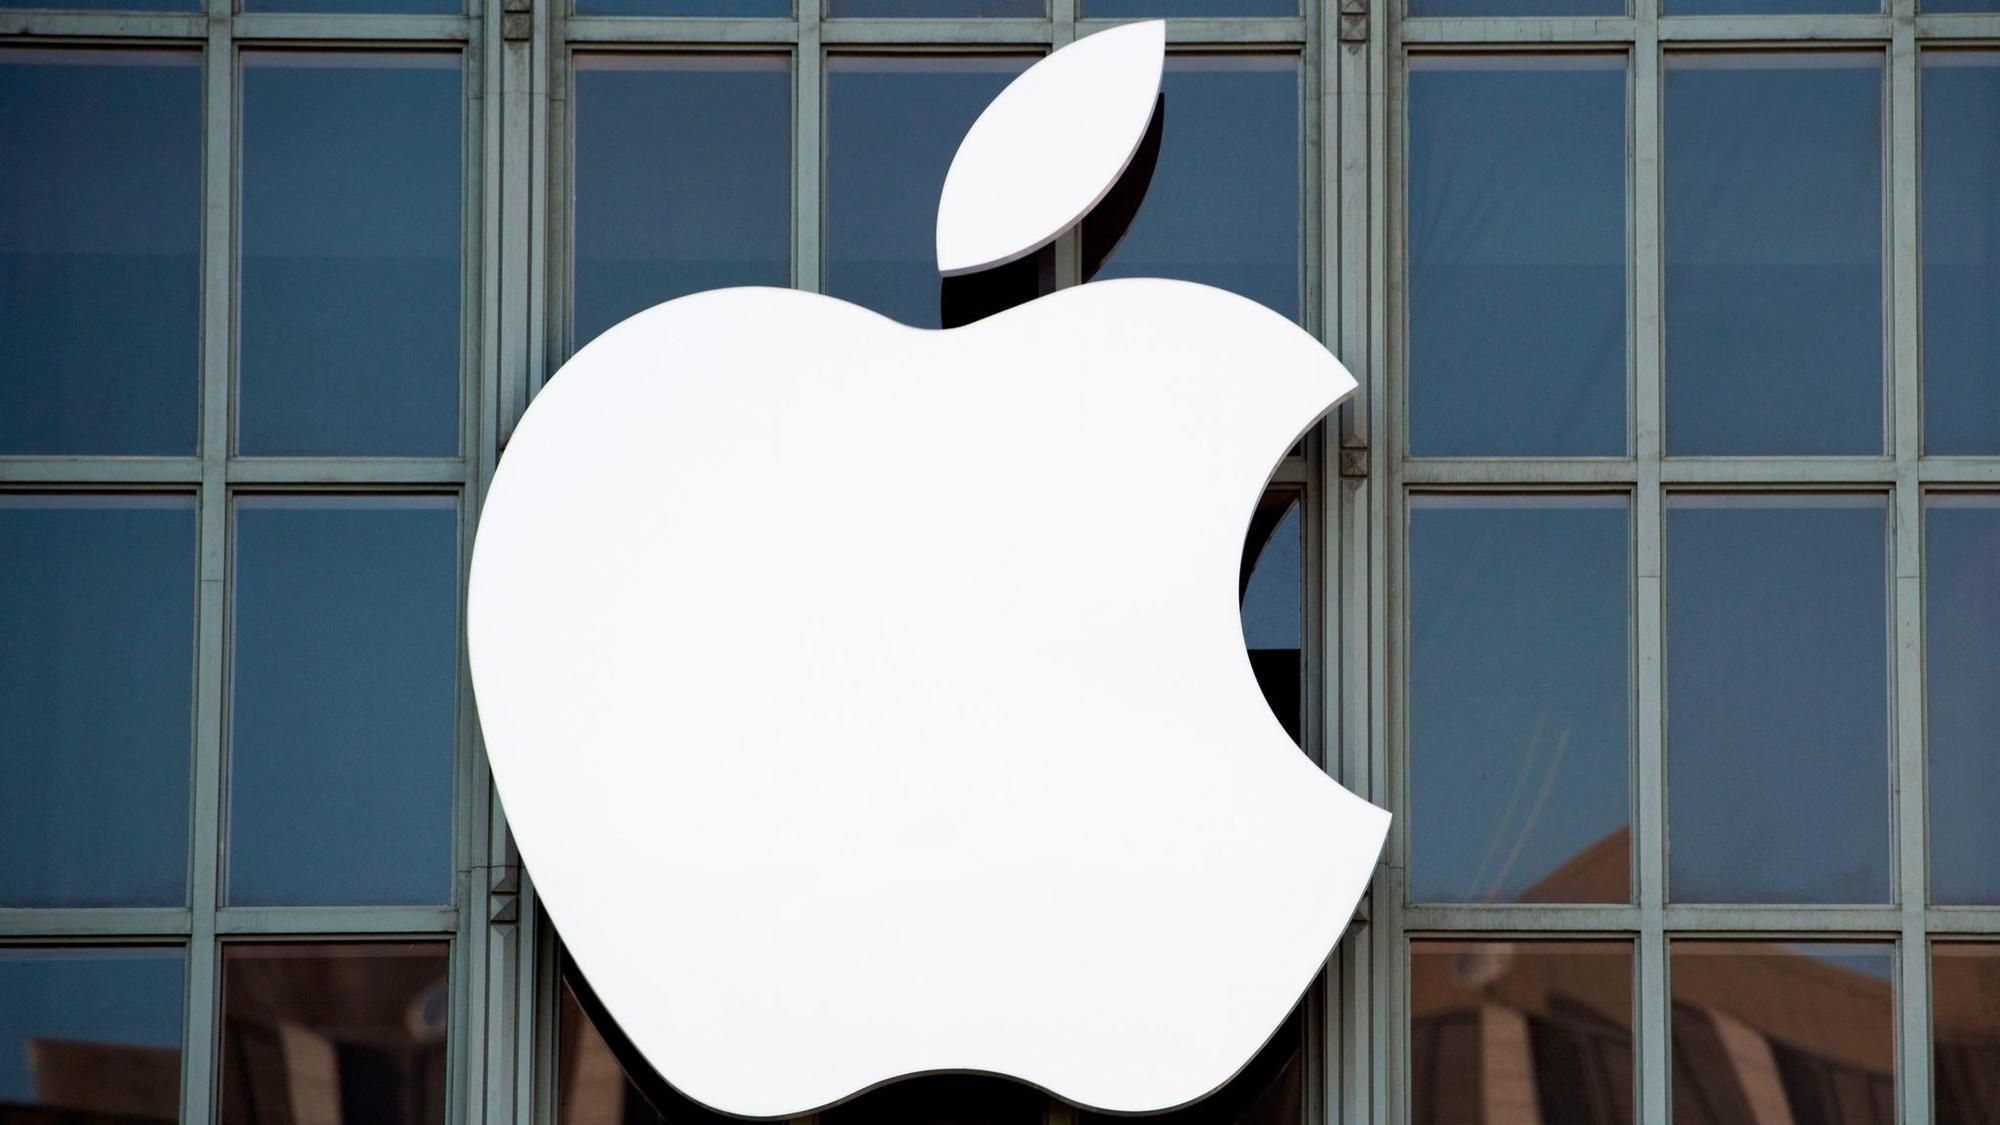 Chicago sets sights on Apple and its new campus: 'We're going to go compete'